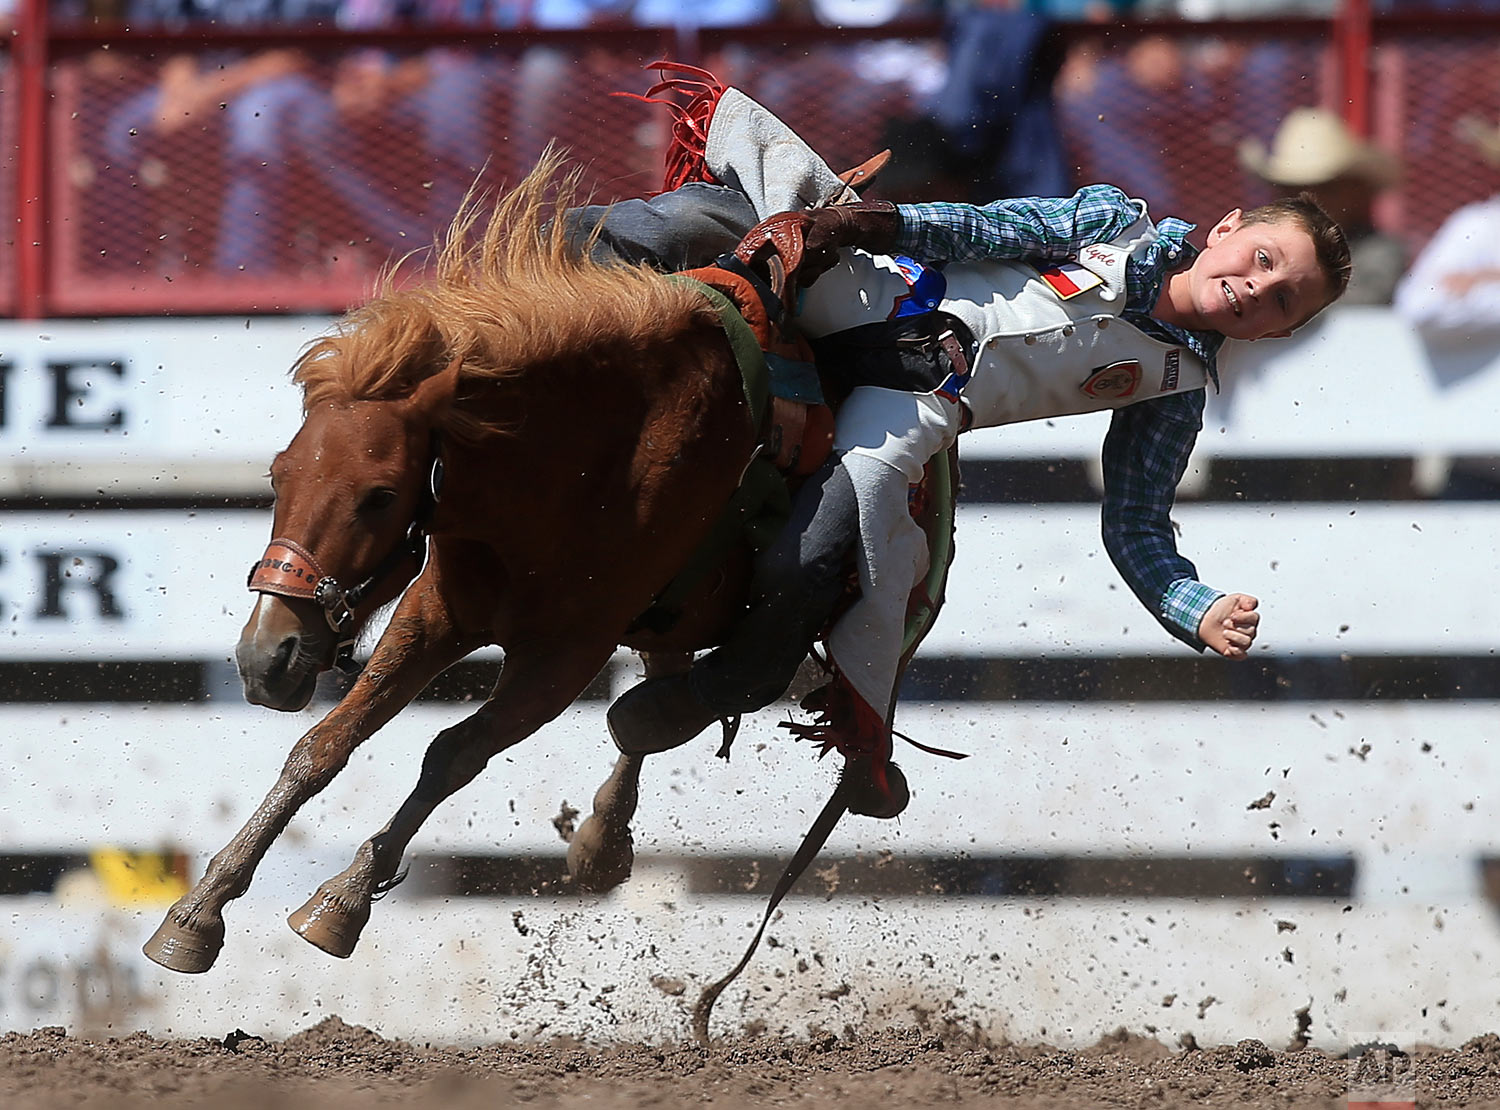 Clyde Cooper competes in the Little Buckers mini bull riders event during the 122nd annual Cheyenne Frontier Days Rodeo on Thursday, July 26, 2018, in Cheyenne, Wyo. (Blaine McCartney/The Wyoming Tribune Eagle via AP)